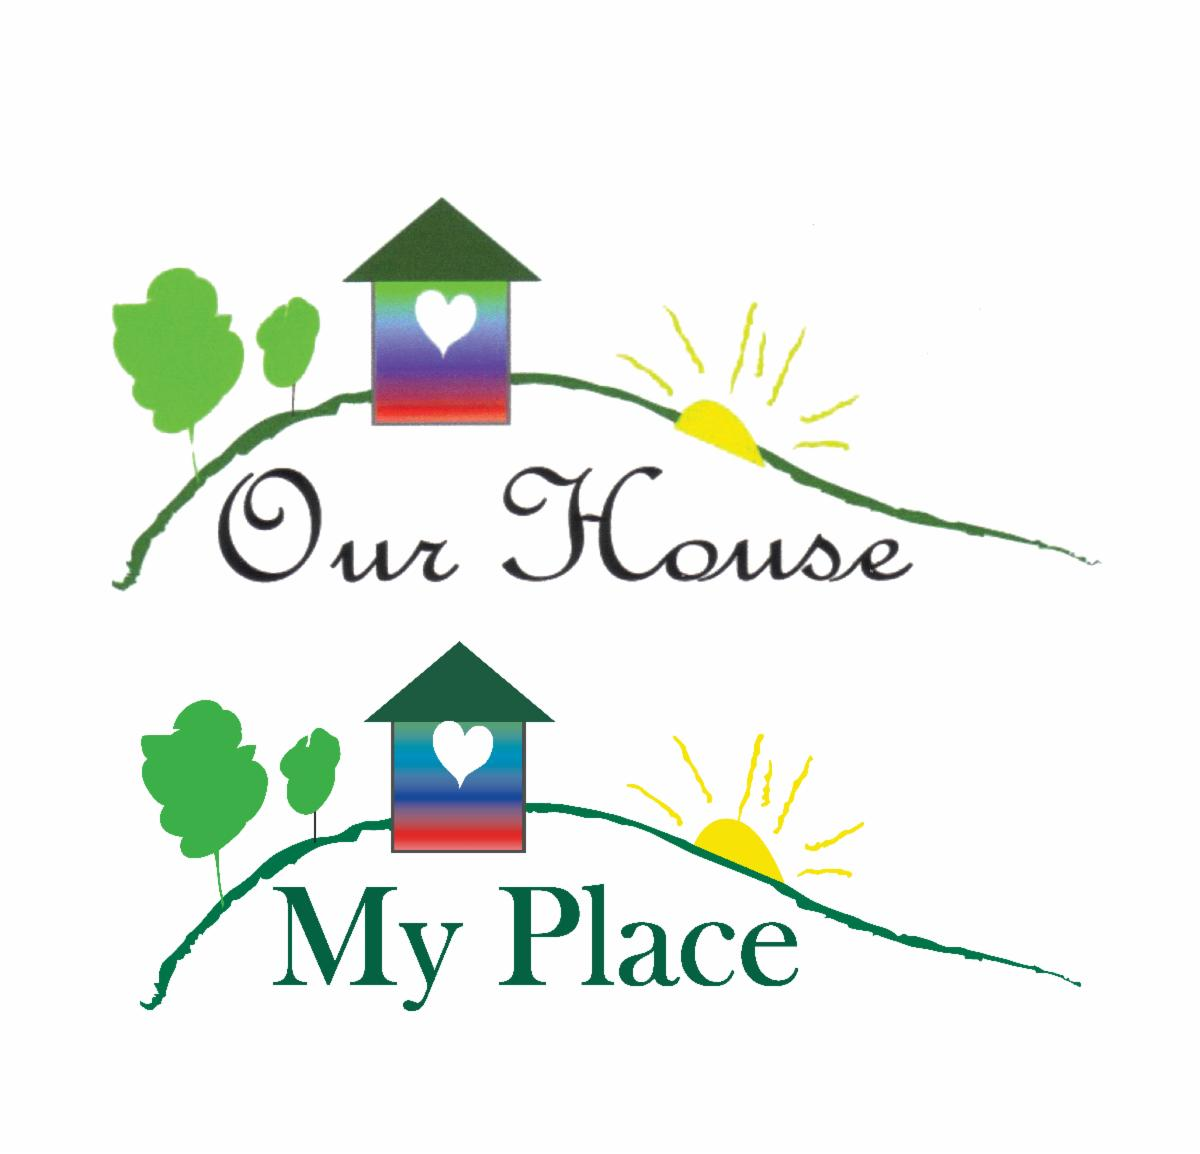 our house and my place logo